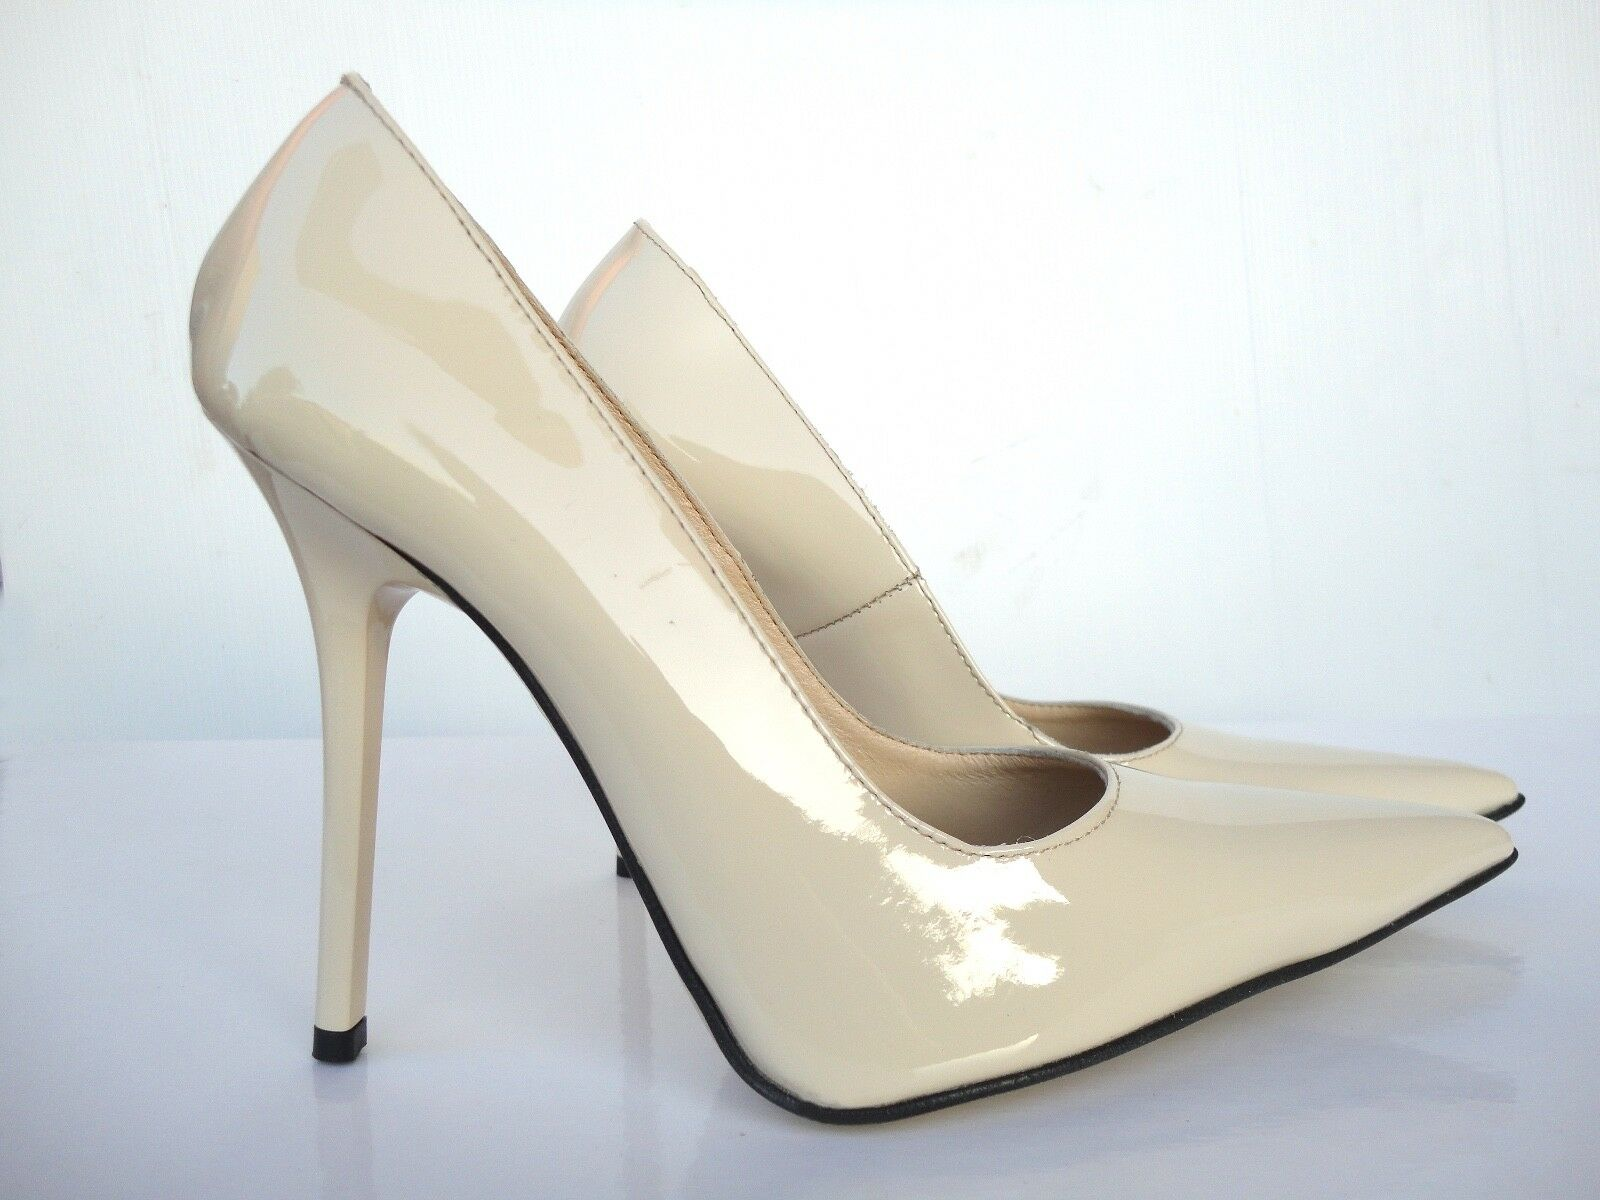 MADE IN ITALY LUXUS HAND MADE HIGH HEELS POINTY PUMPS SCHUHE LEDER BEIGE NUDE 42